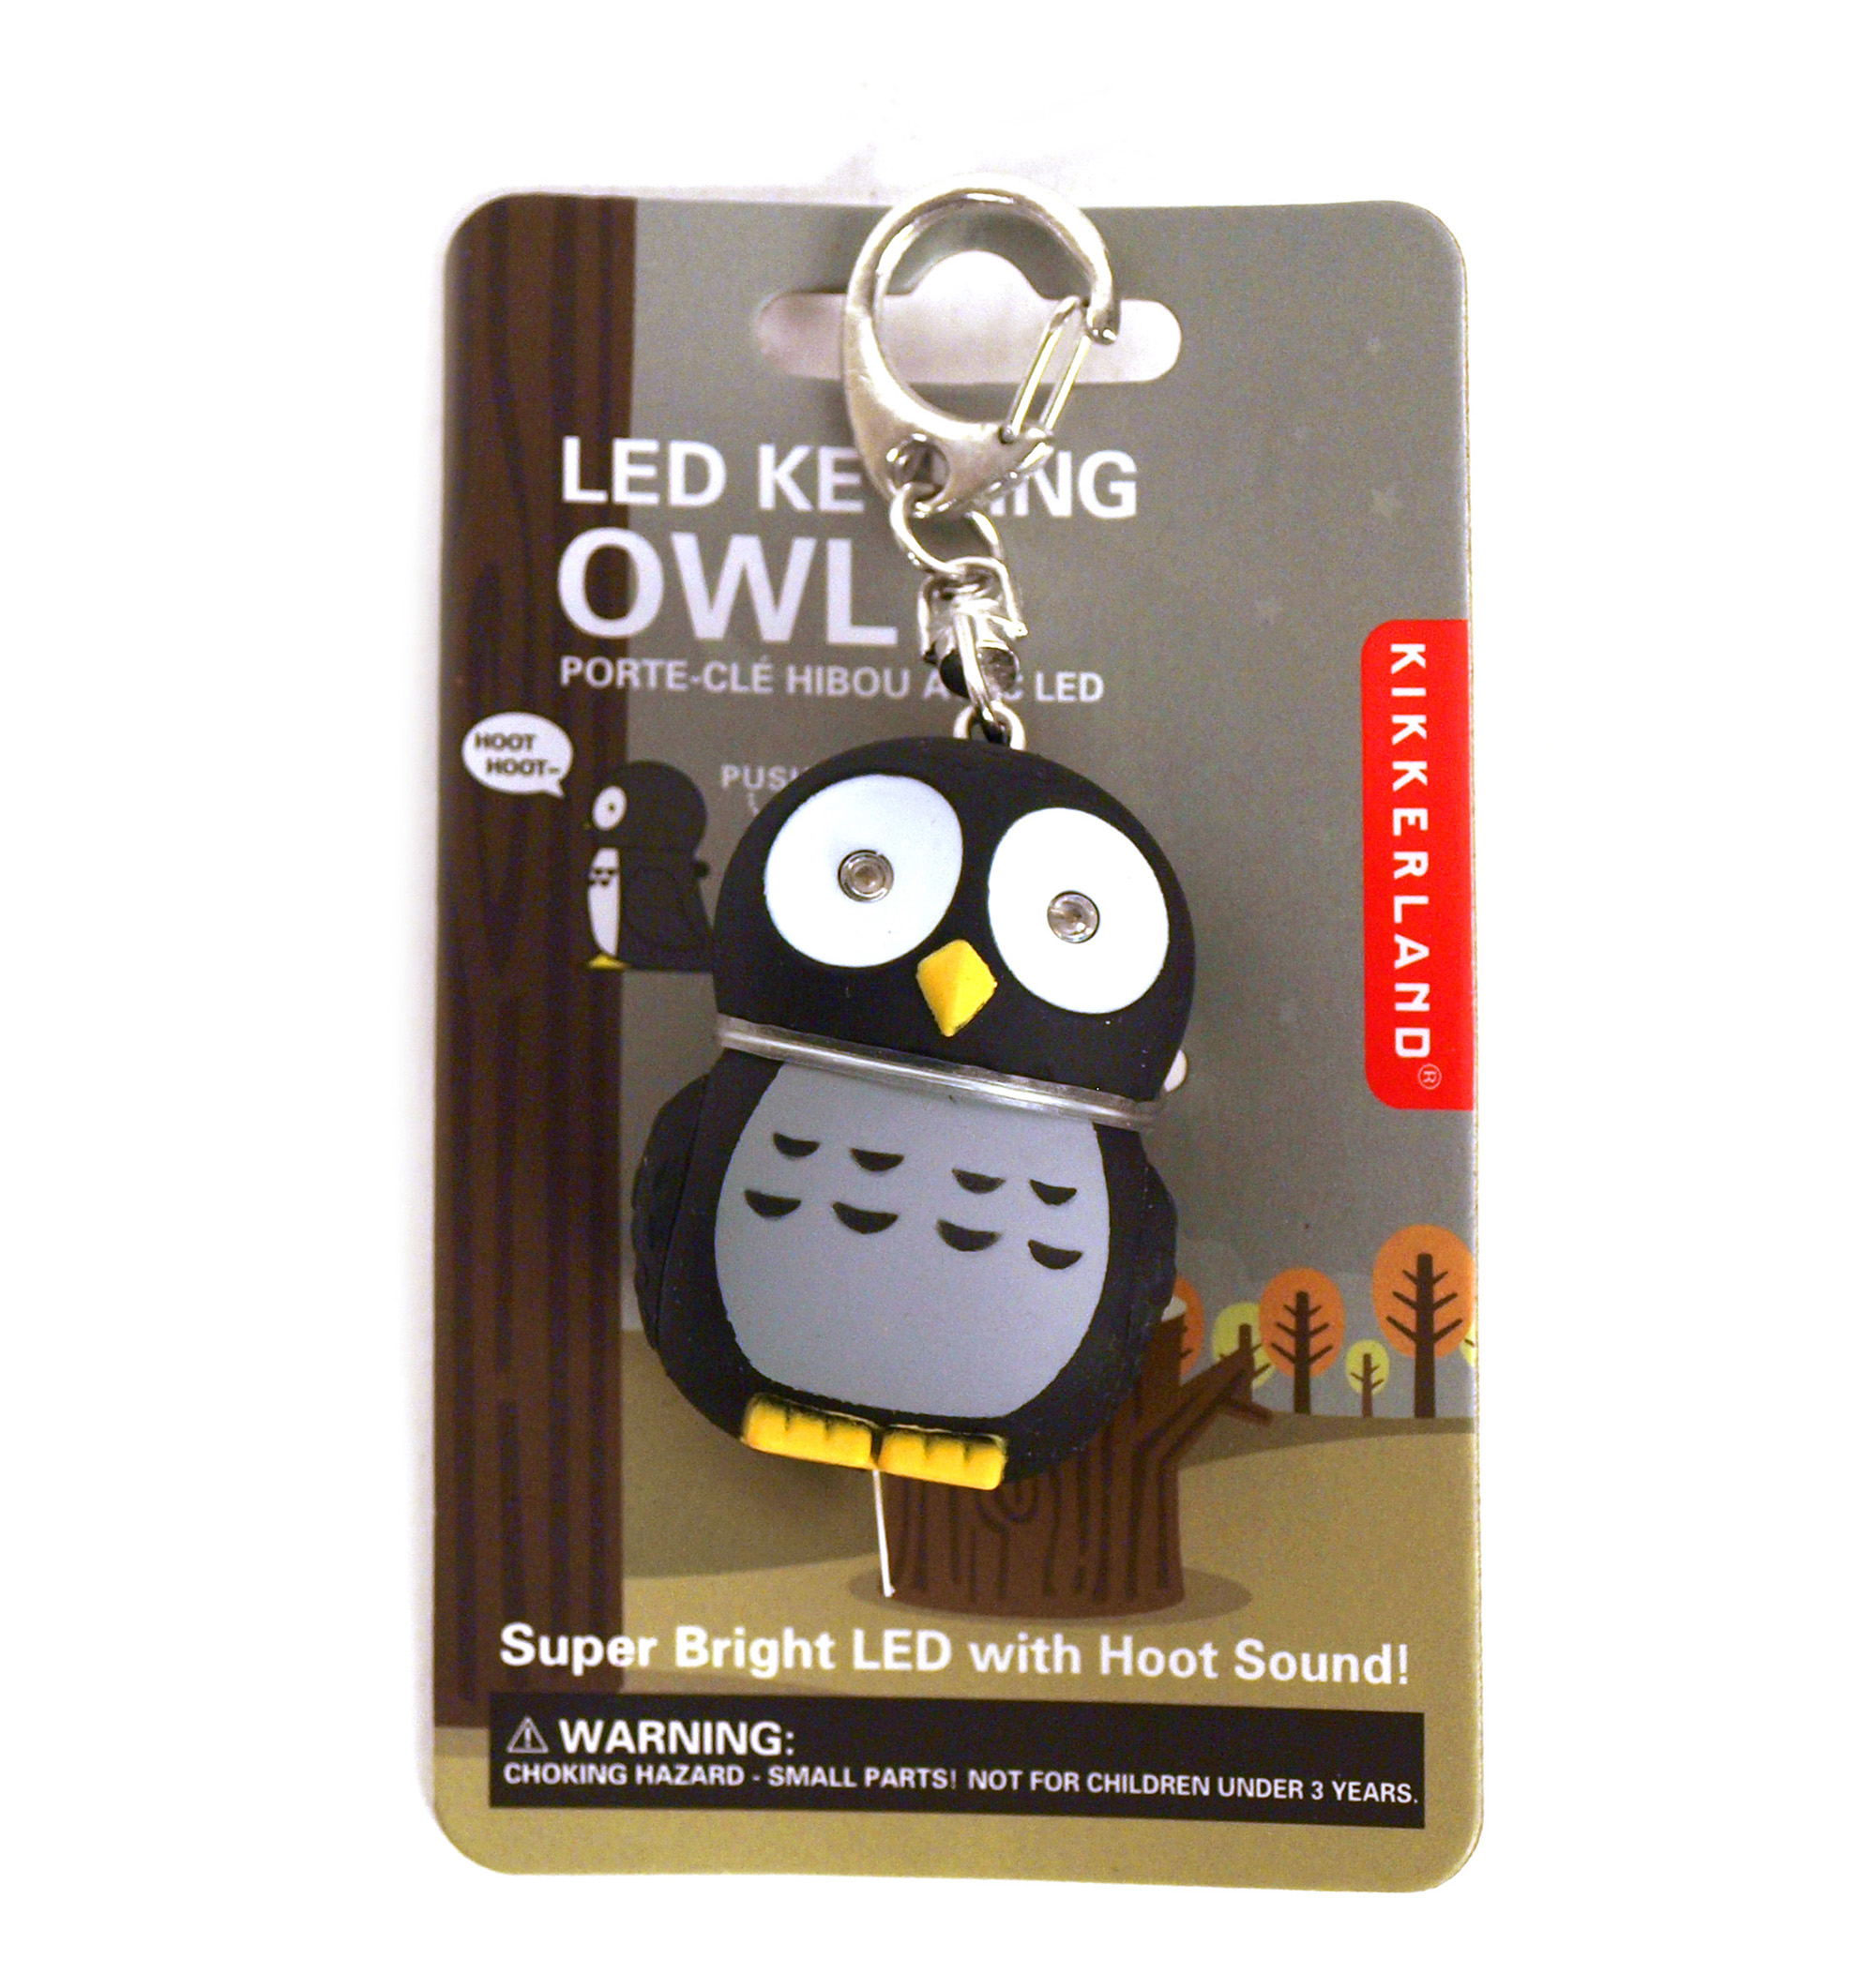 Owl - light up keychain with sound FX 612615046870  6bf5963e7